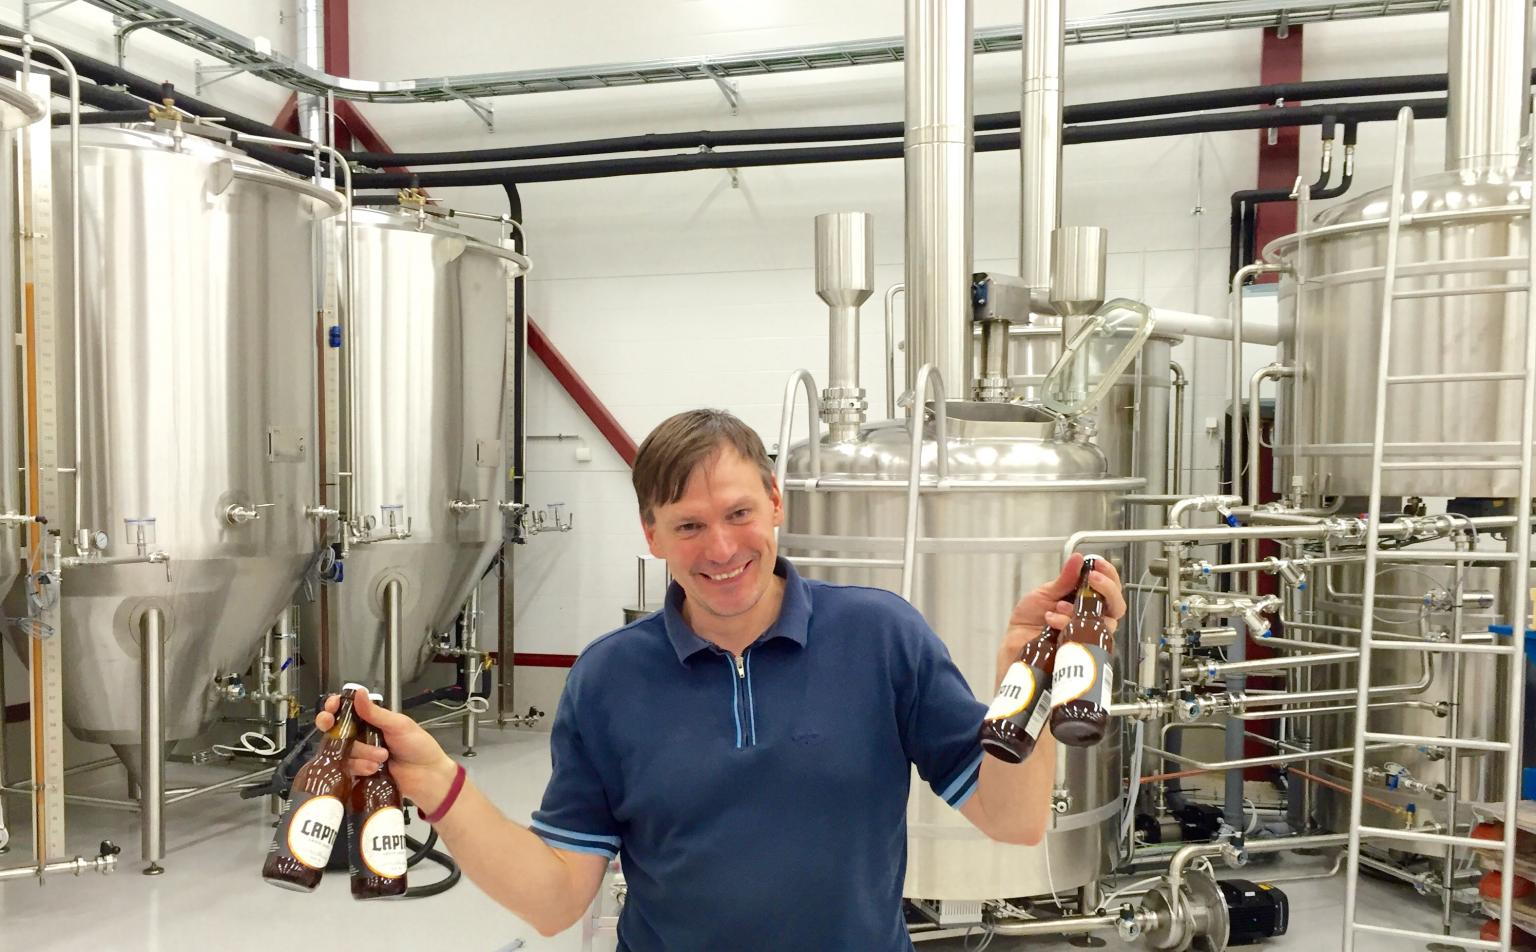 A proud brewery owner showing off the first beers produced since his factory installed its Flecks Mixer